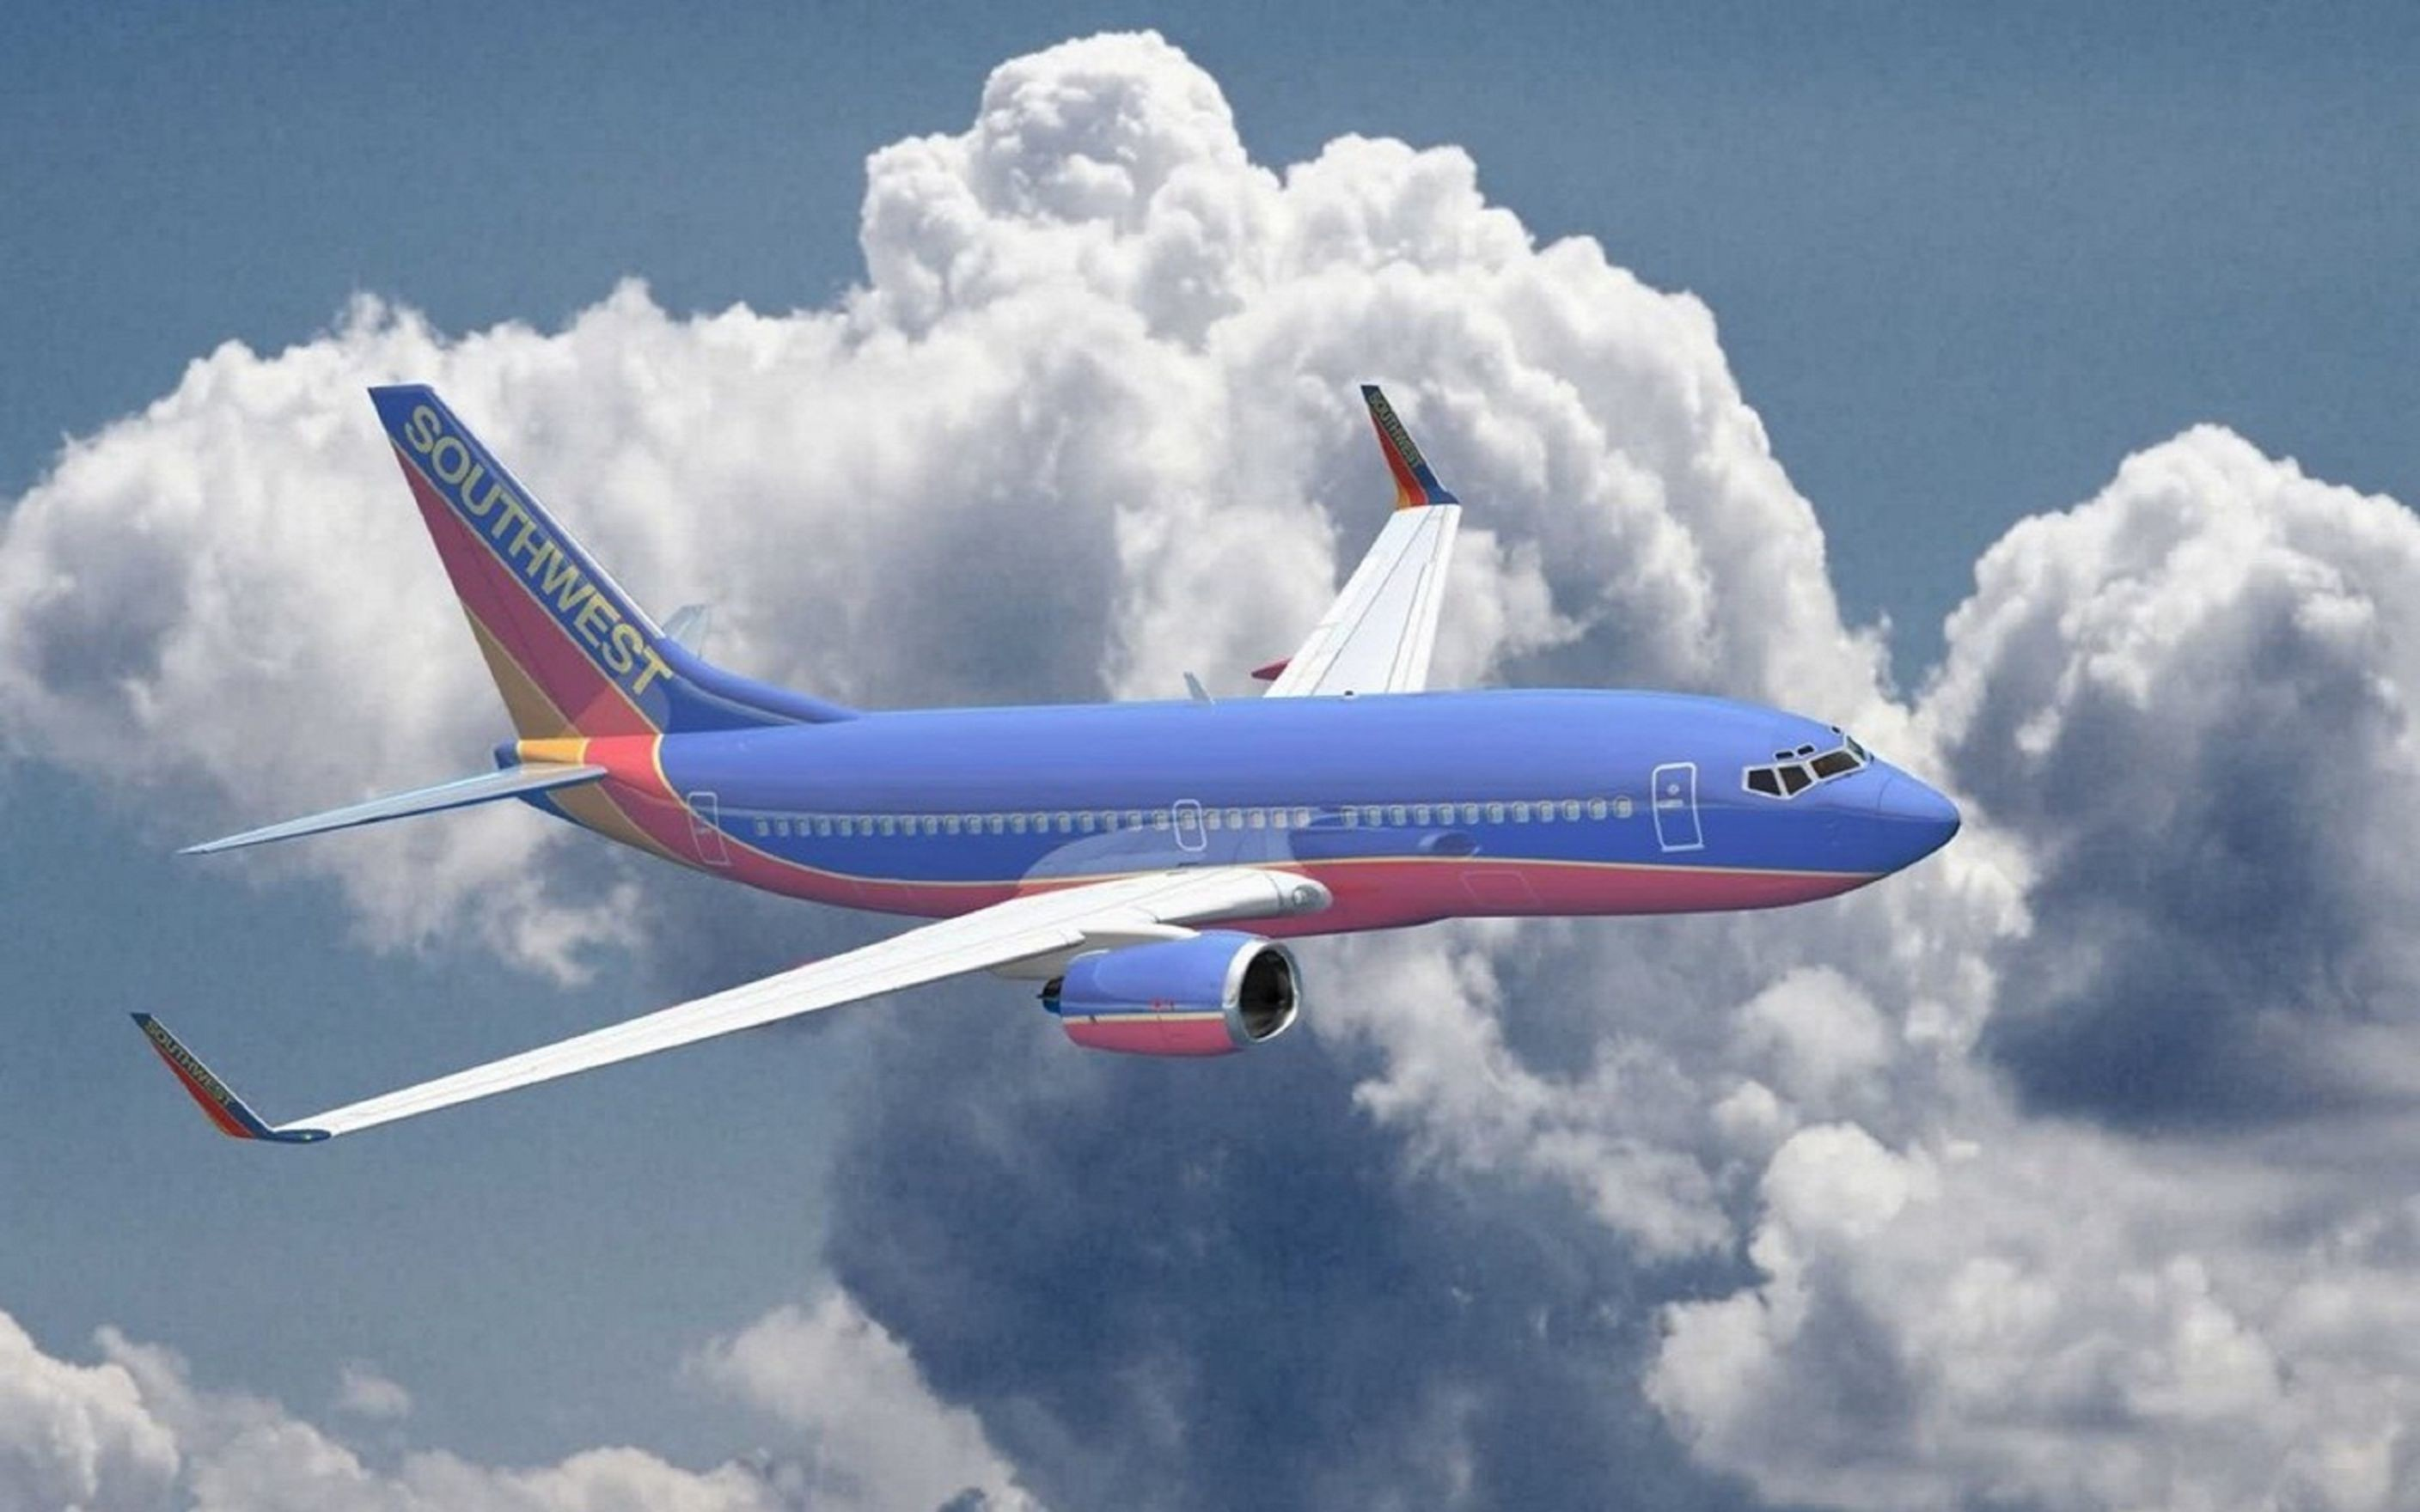 2816x1760 Download Aircraft Airliners Southwest Airlines Boeing 737 700 Wallpaper  Free Wallpaper on dailyhdwallpaper.com